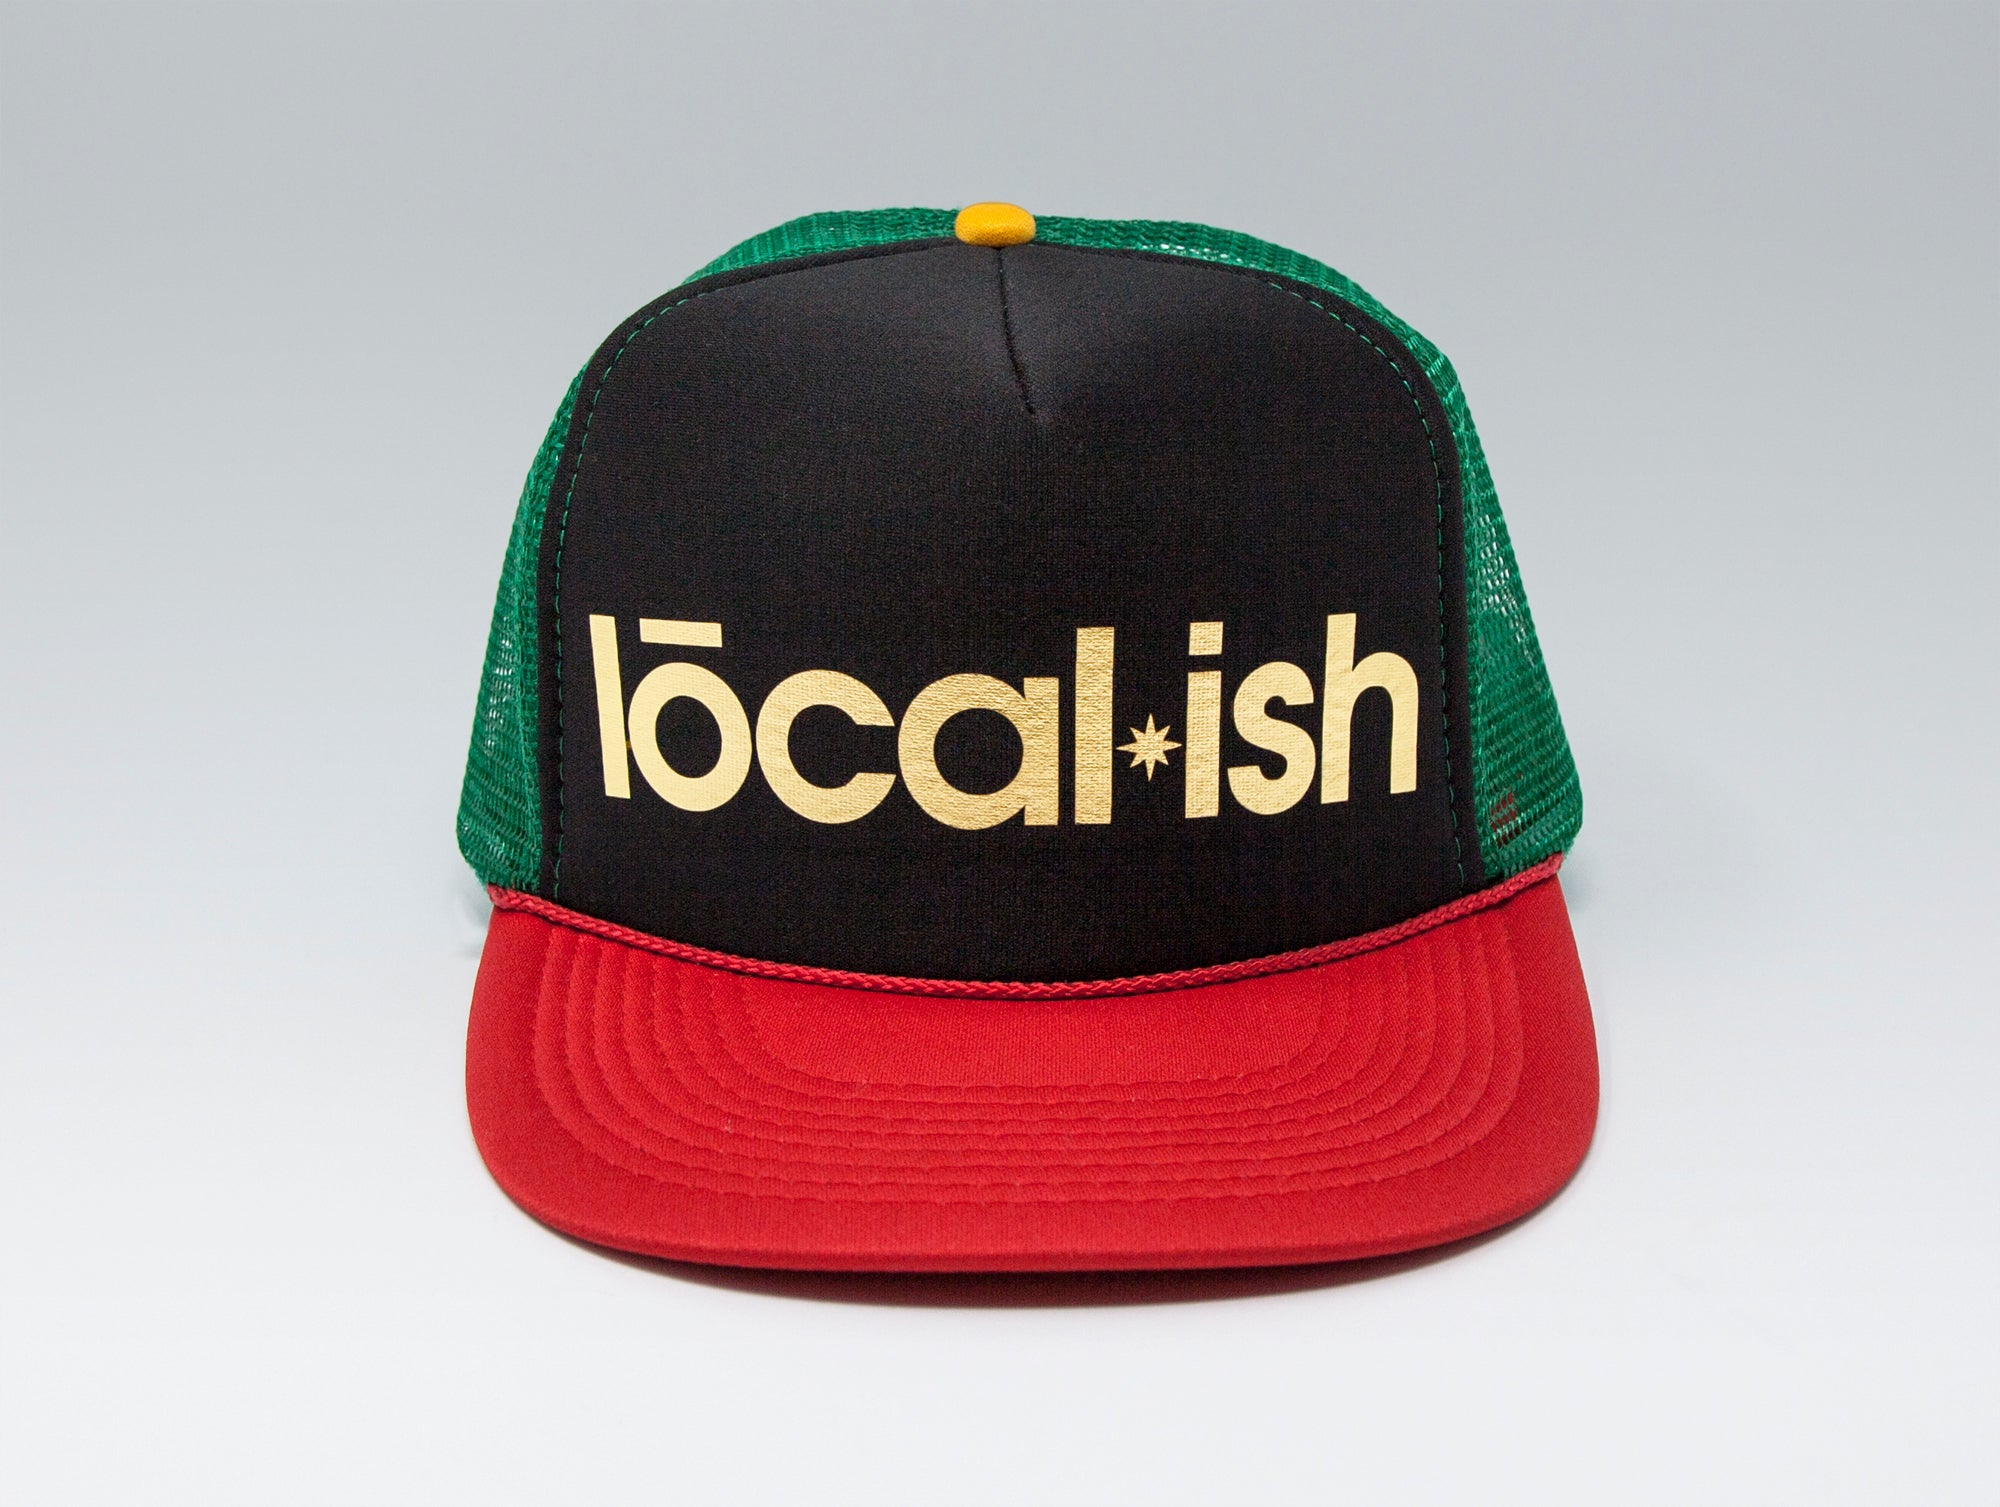 Localish Foil Printed Trucker Hat - Rasta - center